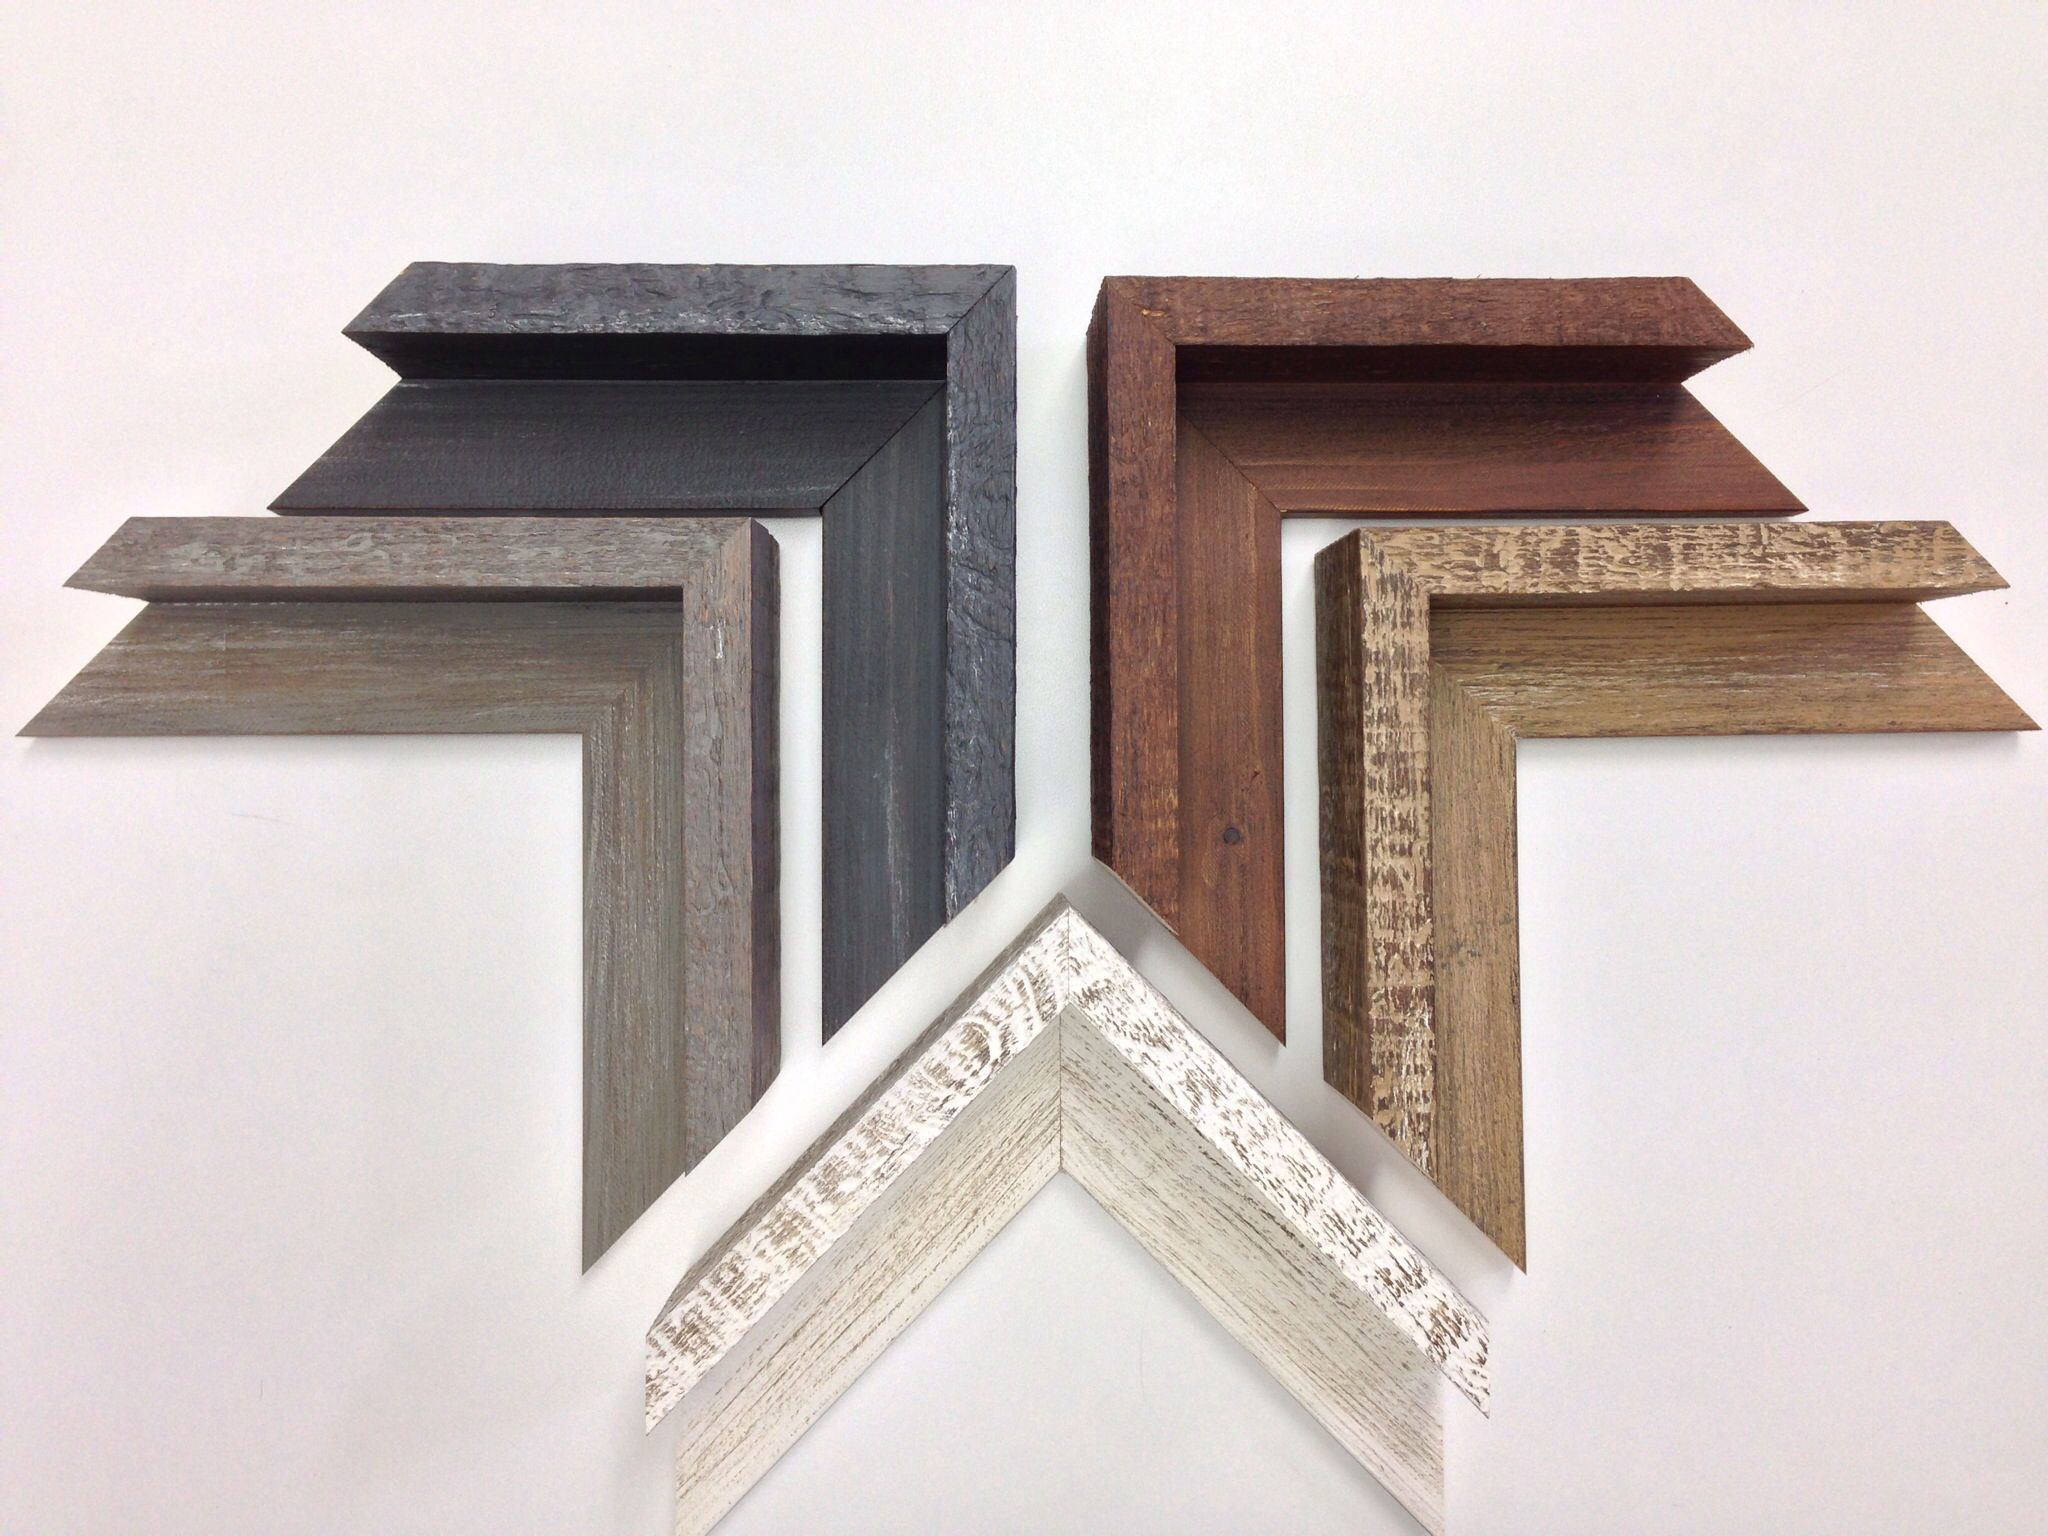 new rustic natural wood floater frame samples for deep gallery wrap canvas artwork just arrived these custom picture frames have lots of texture